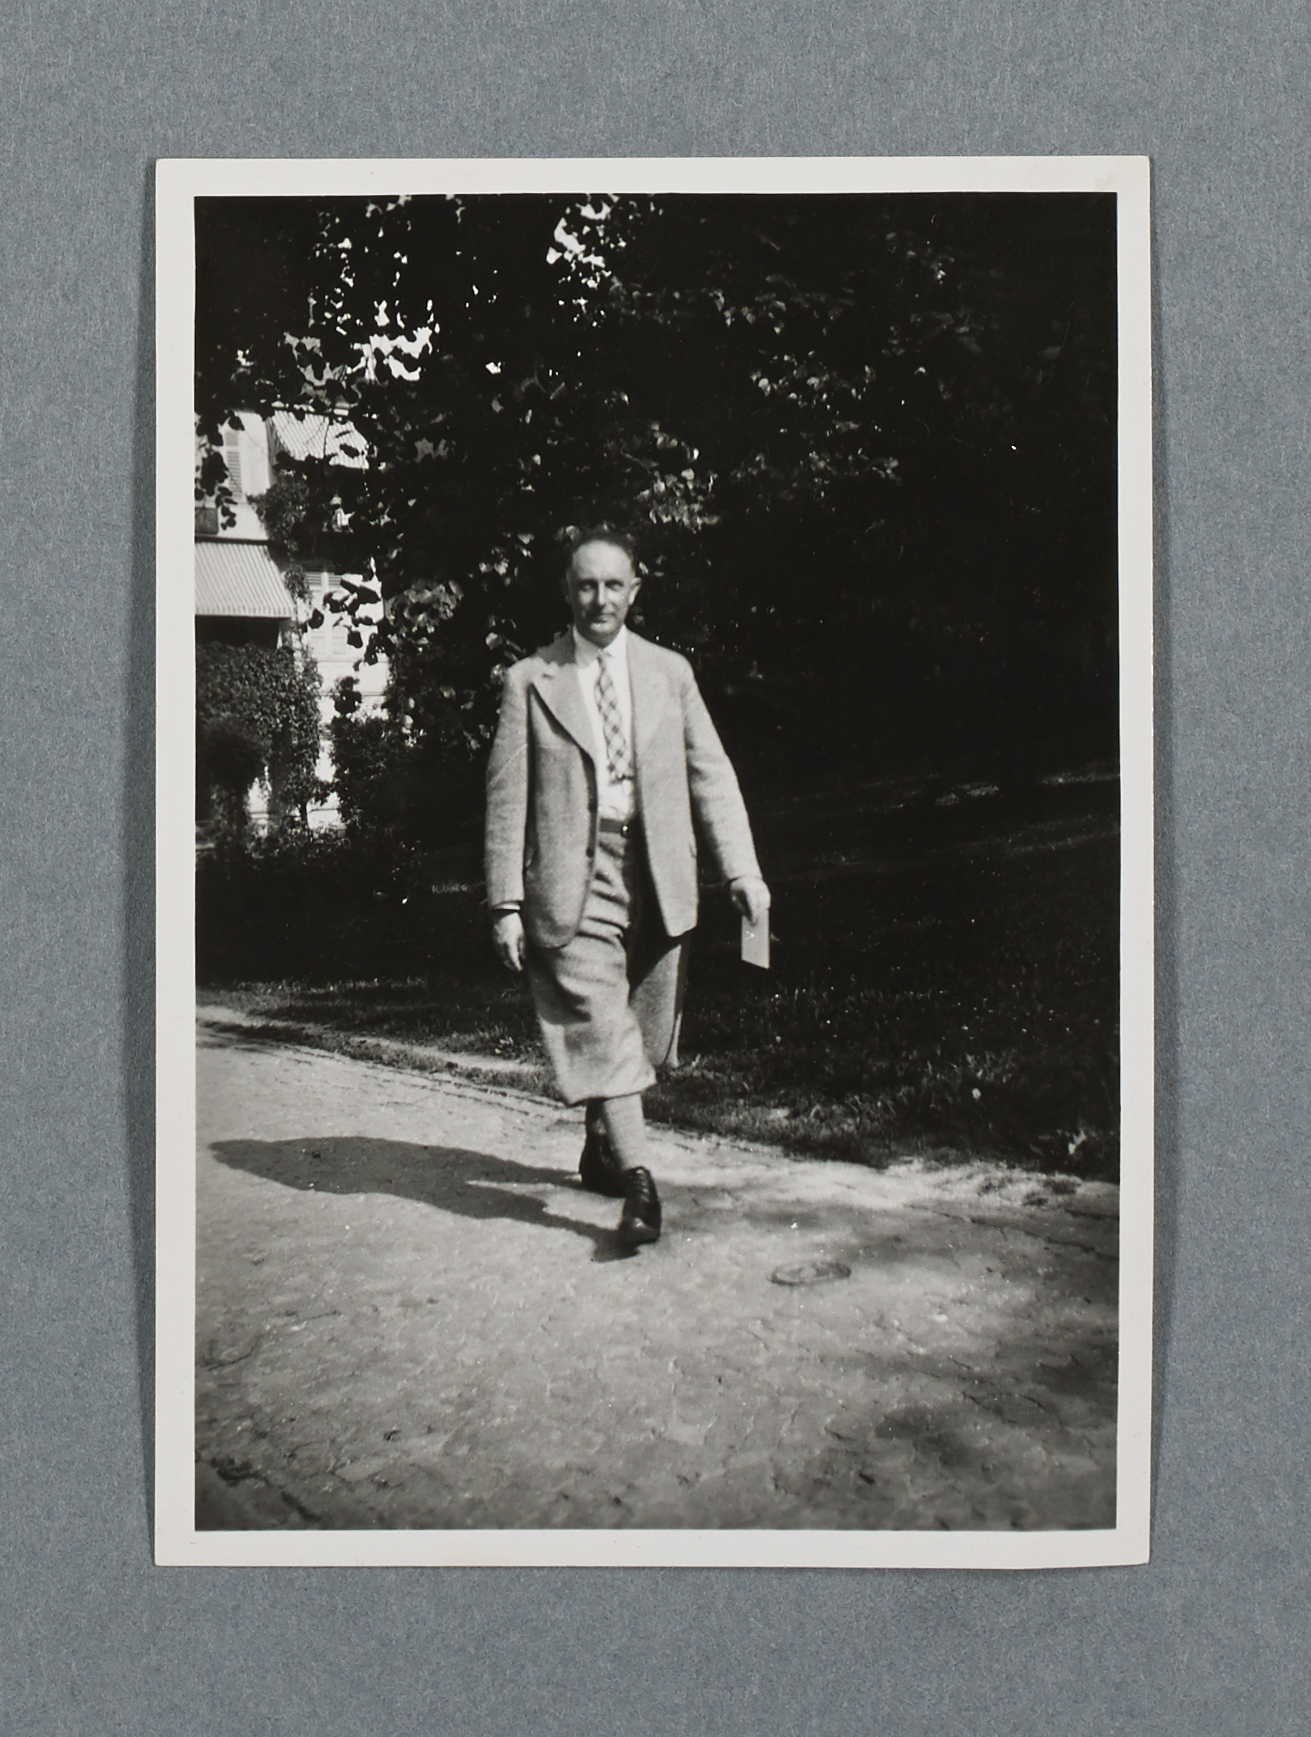 Black and white image of a man holding a card, walking towards the camera